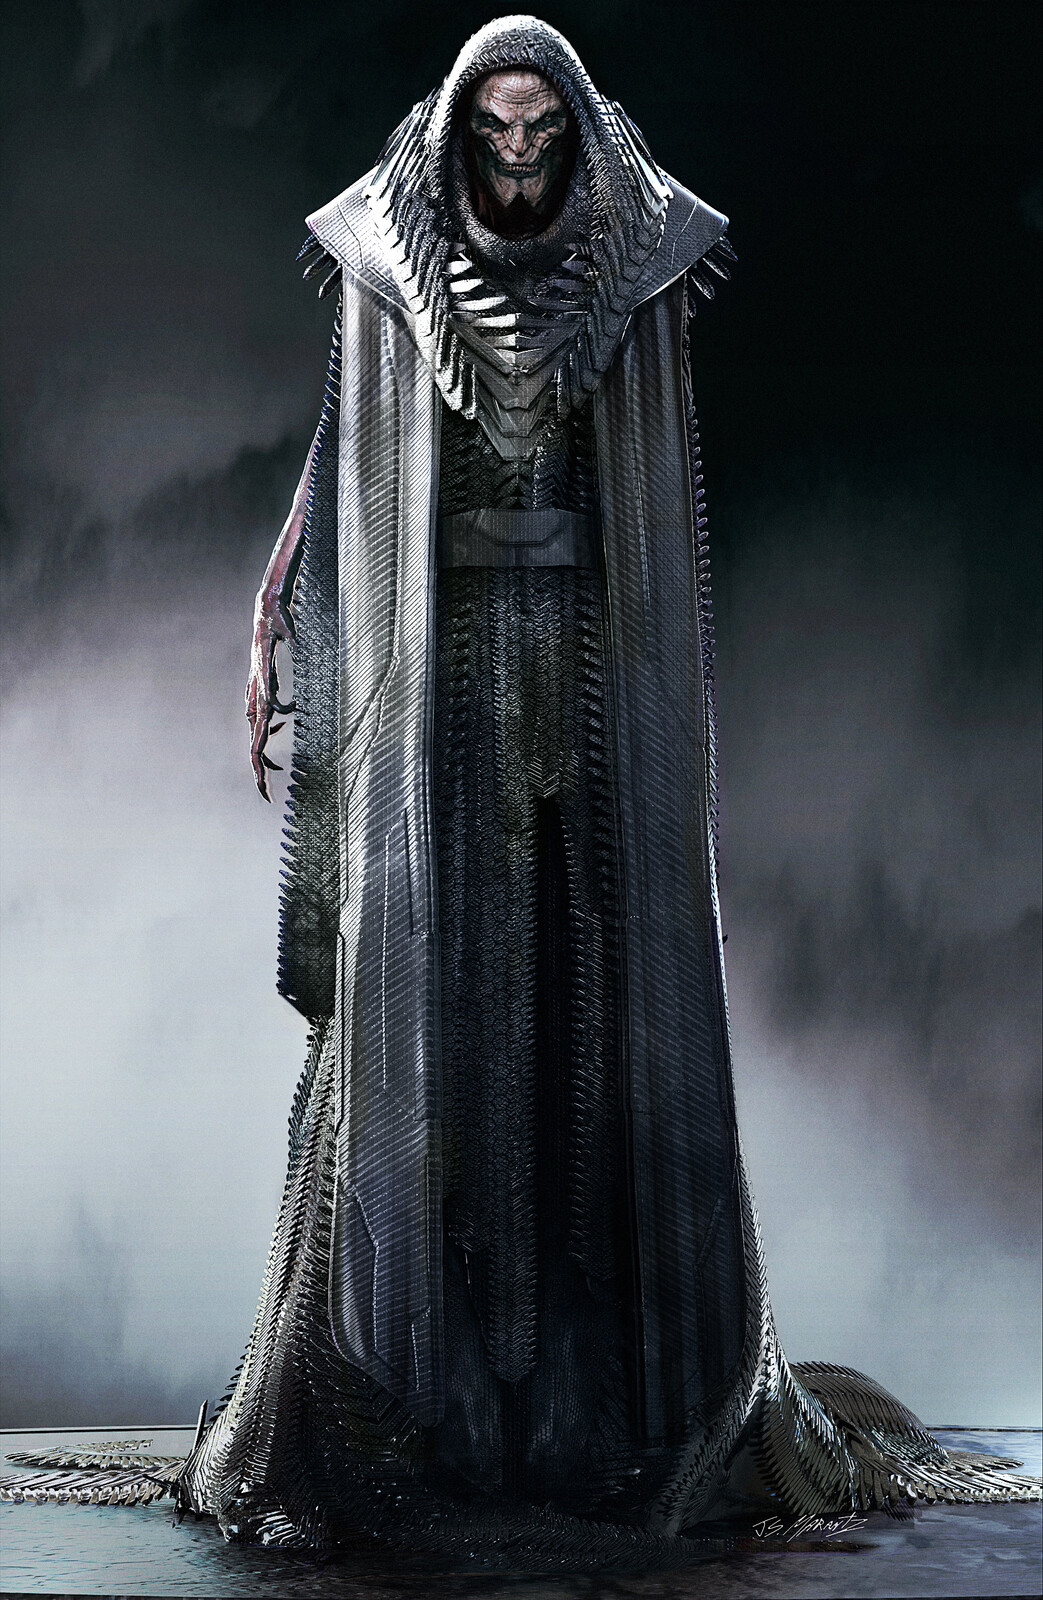 DESAAD Concept Art For Zack Snyder's Justice League